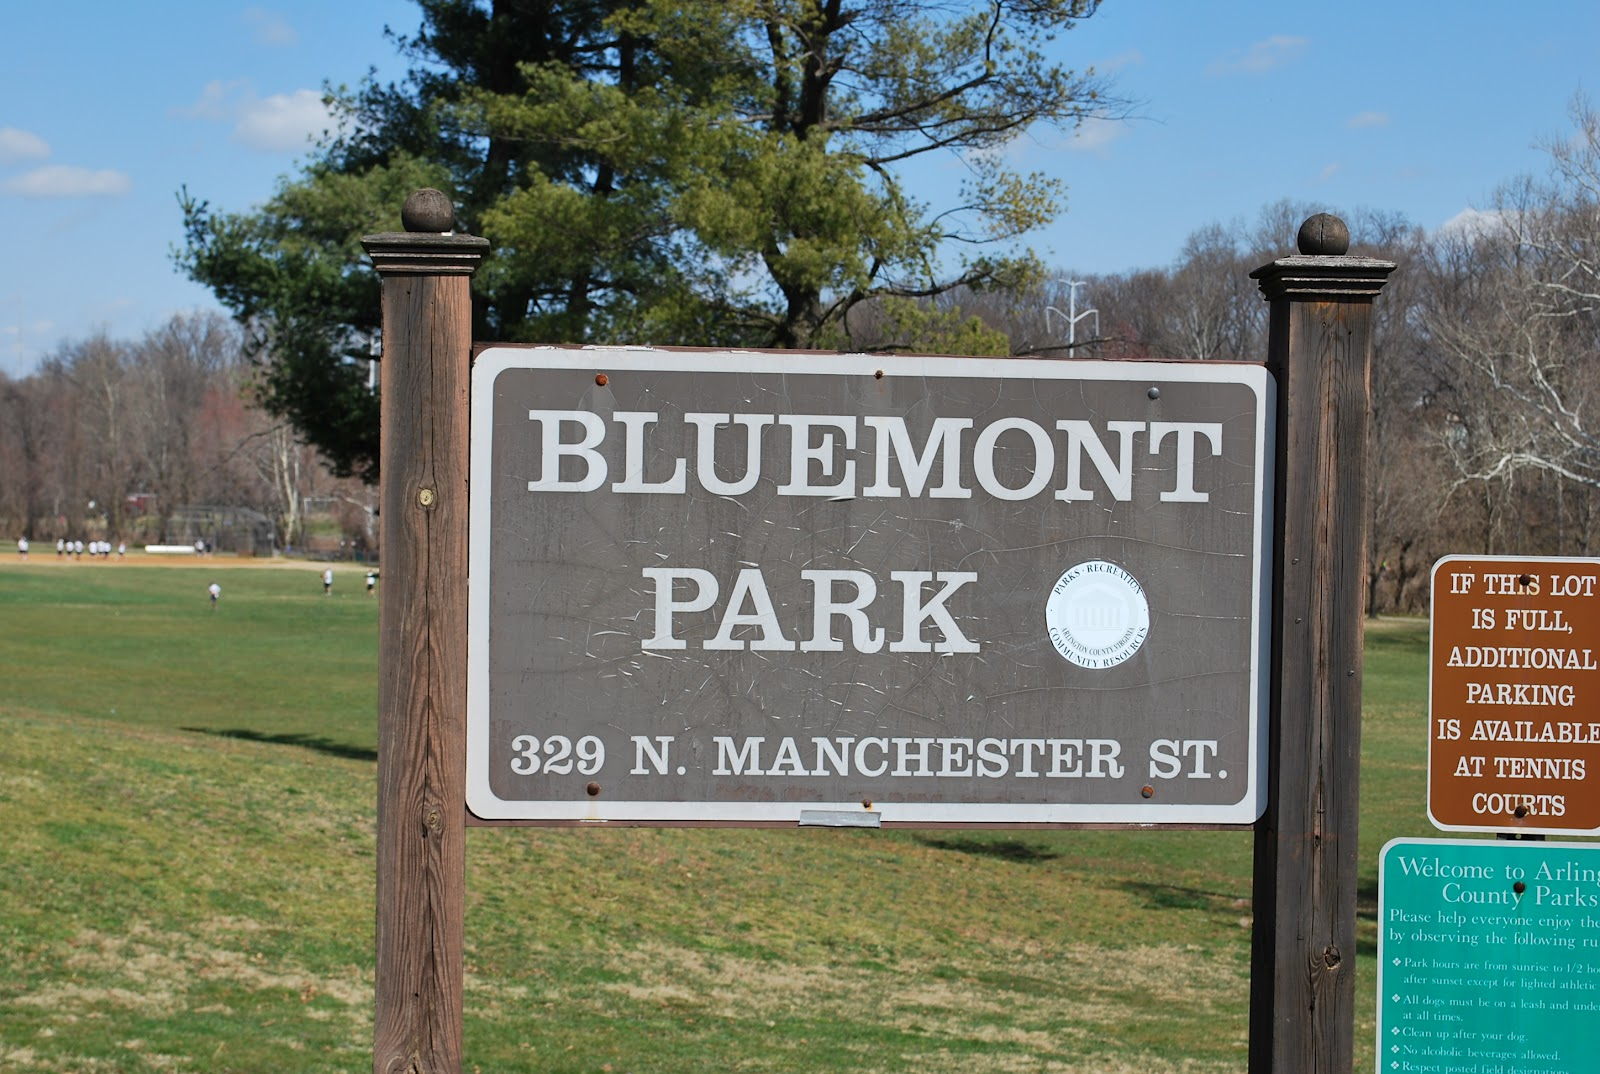 bluemont women Check out these birthday ecards from blue mountain birthday ecards funny birthday ecards birthday ecards for him birthday ecards for her.